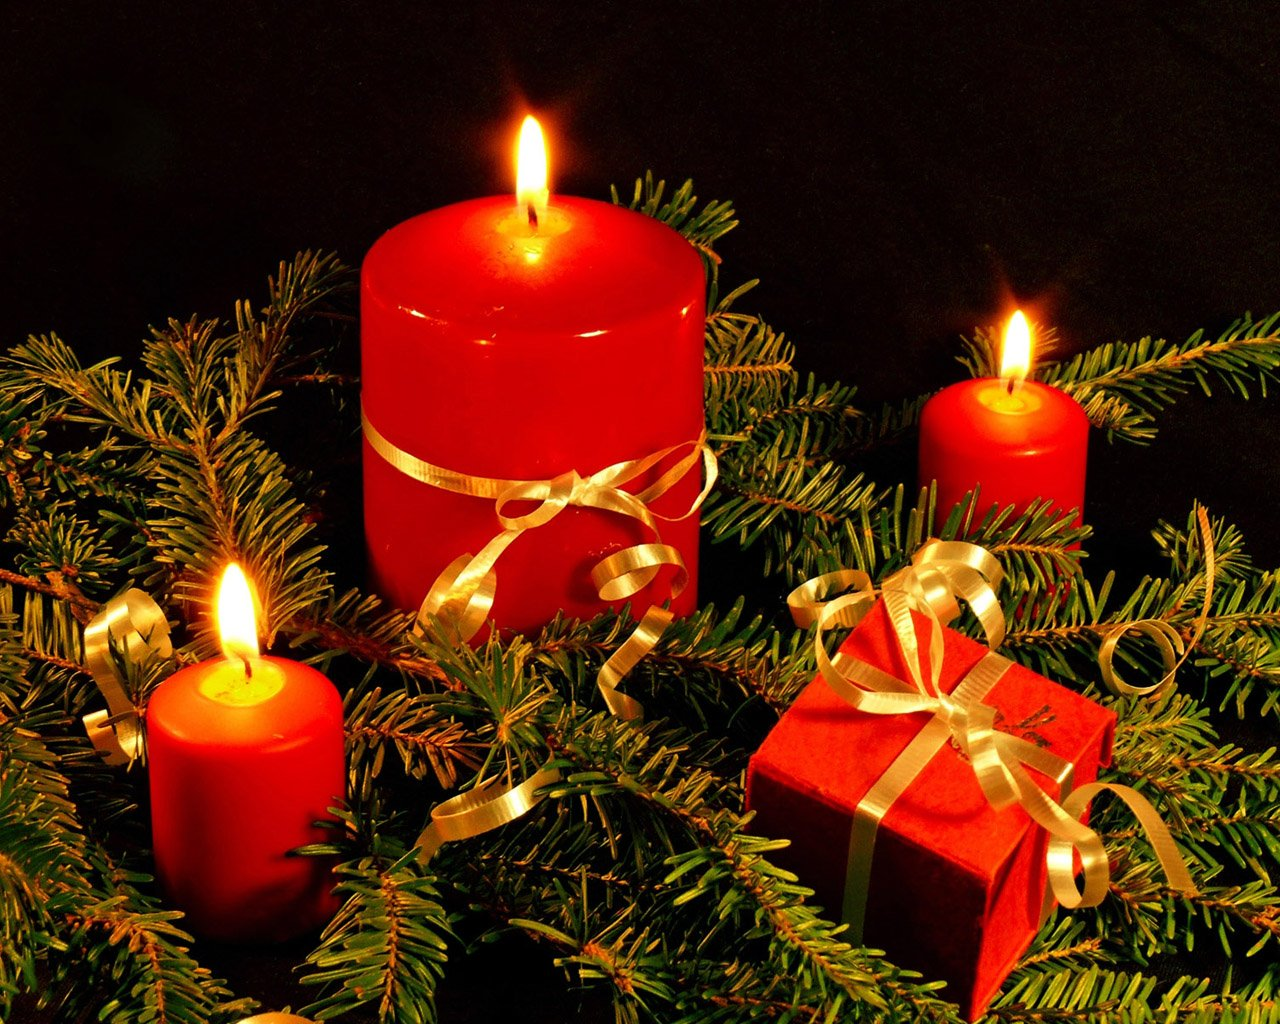 ... wallpapers free 3d christmas wallpapers free wallpaper free wallpapers